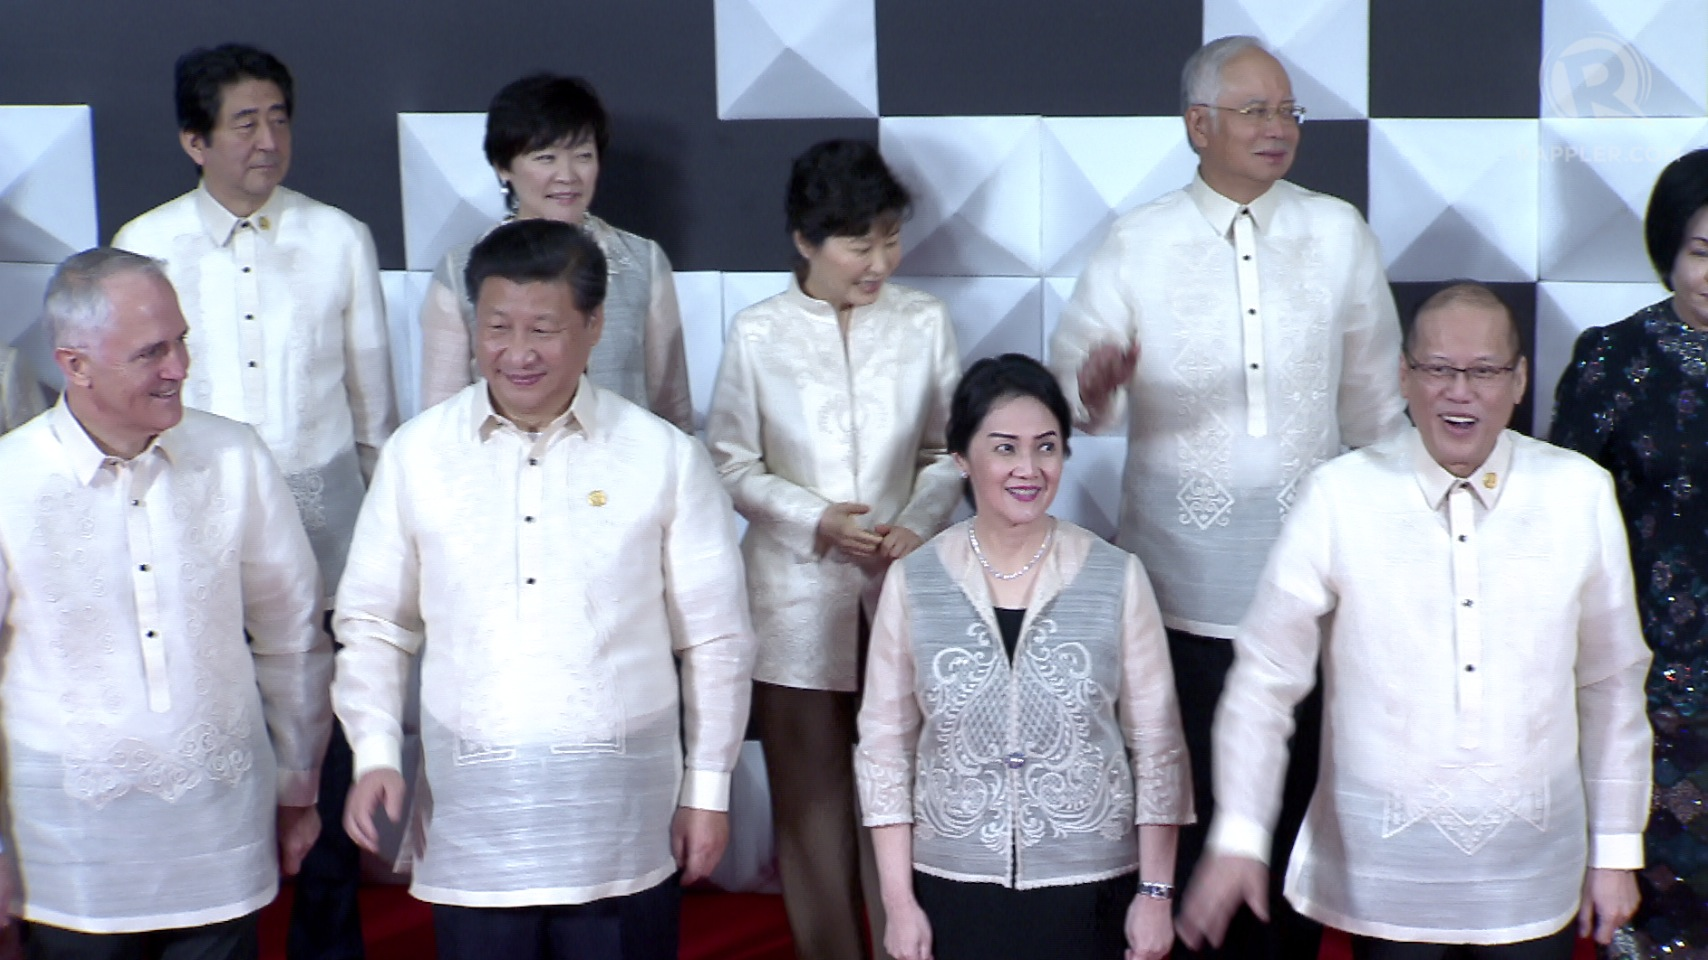 Designer Paul Cabral 39 S Barong Designs For Apec Leaders